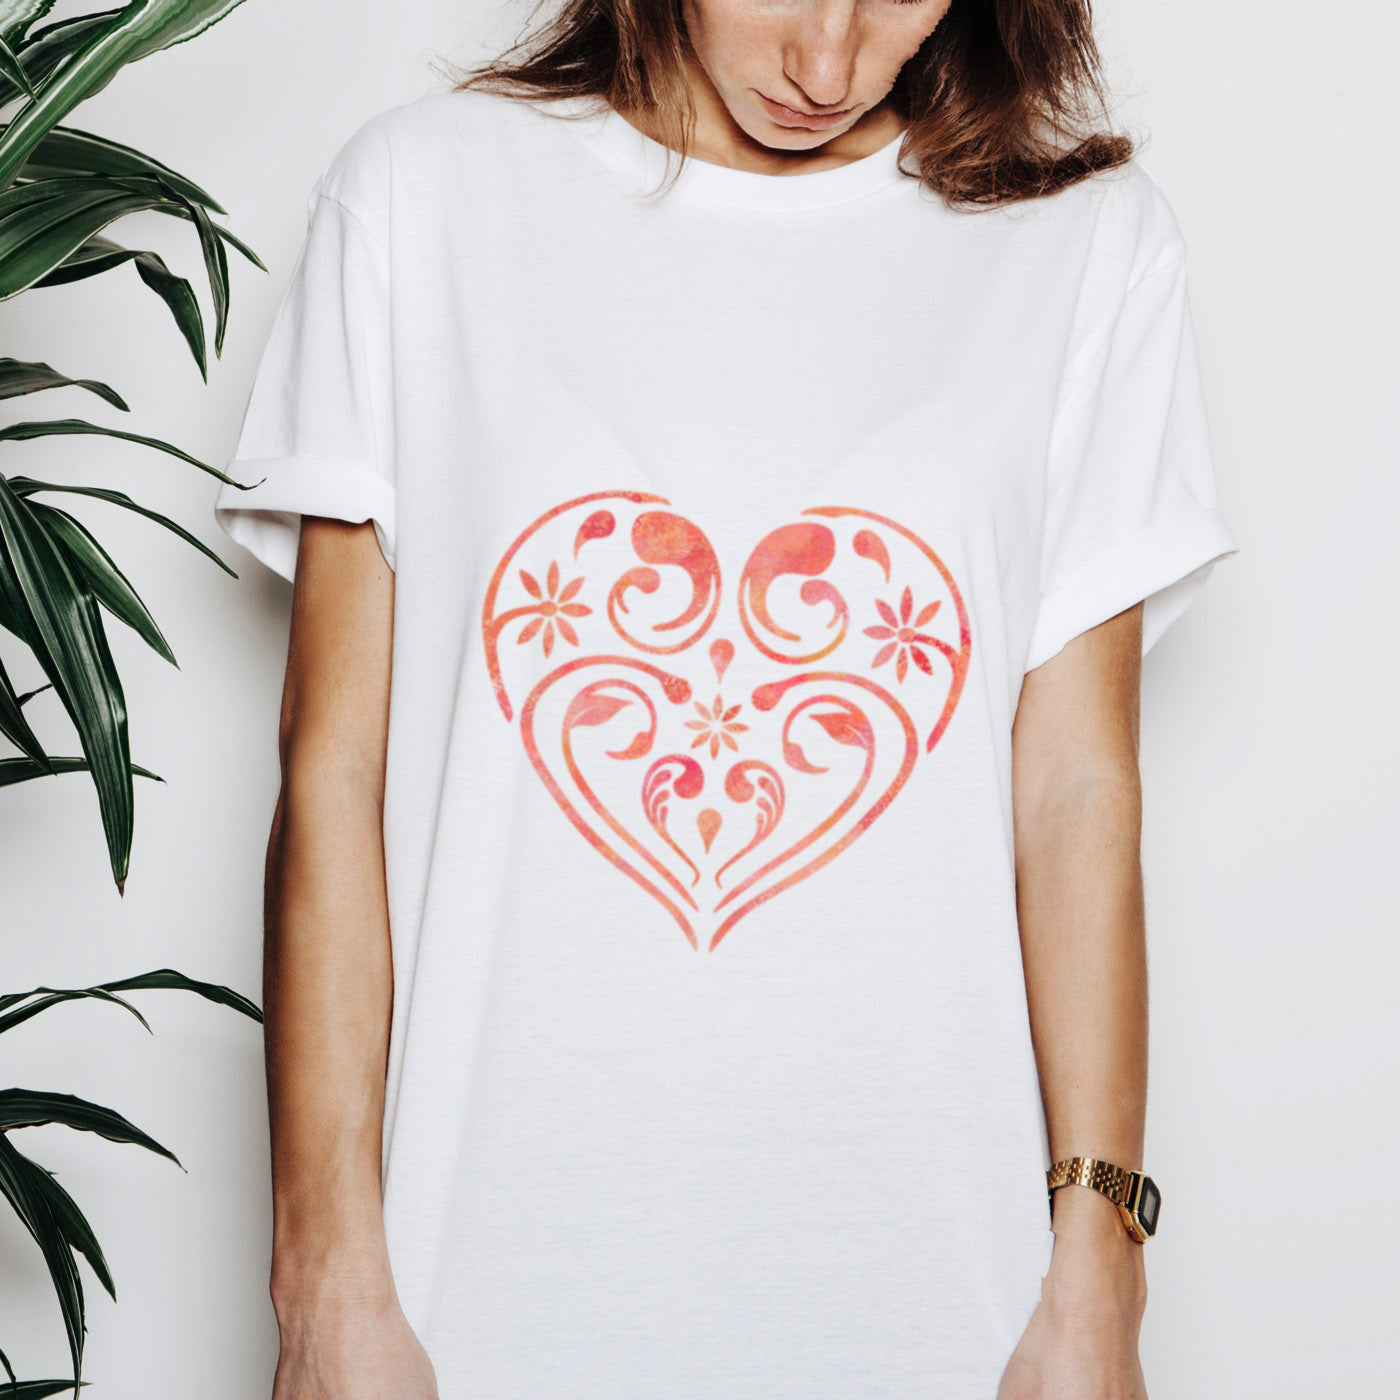 Flourish & Flower Pattern Heart on Tshirt - CraftStar